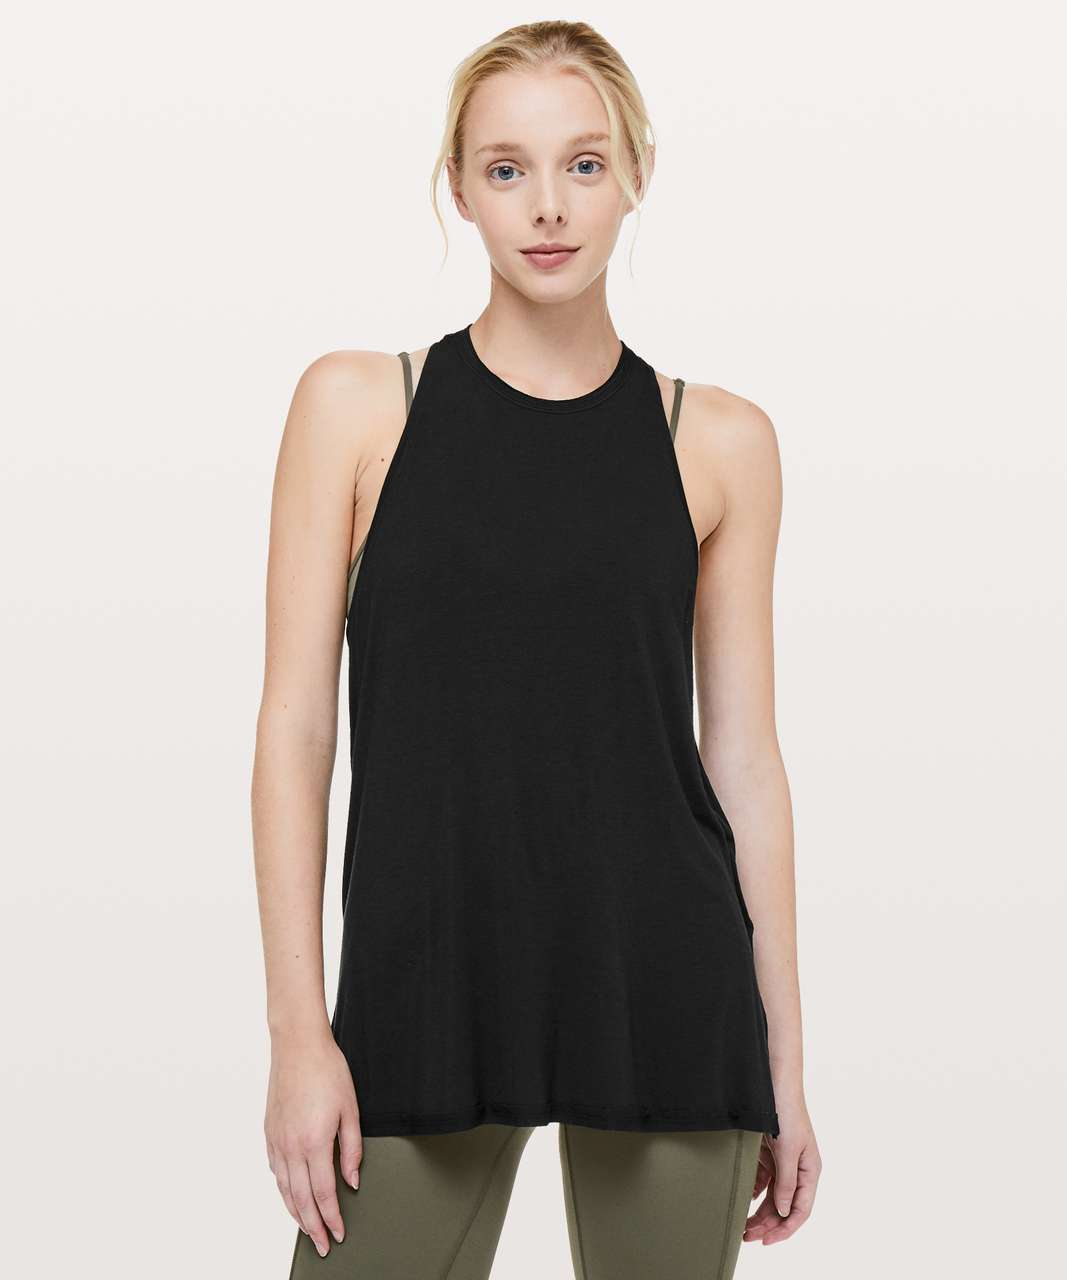 Lululemon Principal Dancer Tank - Black